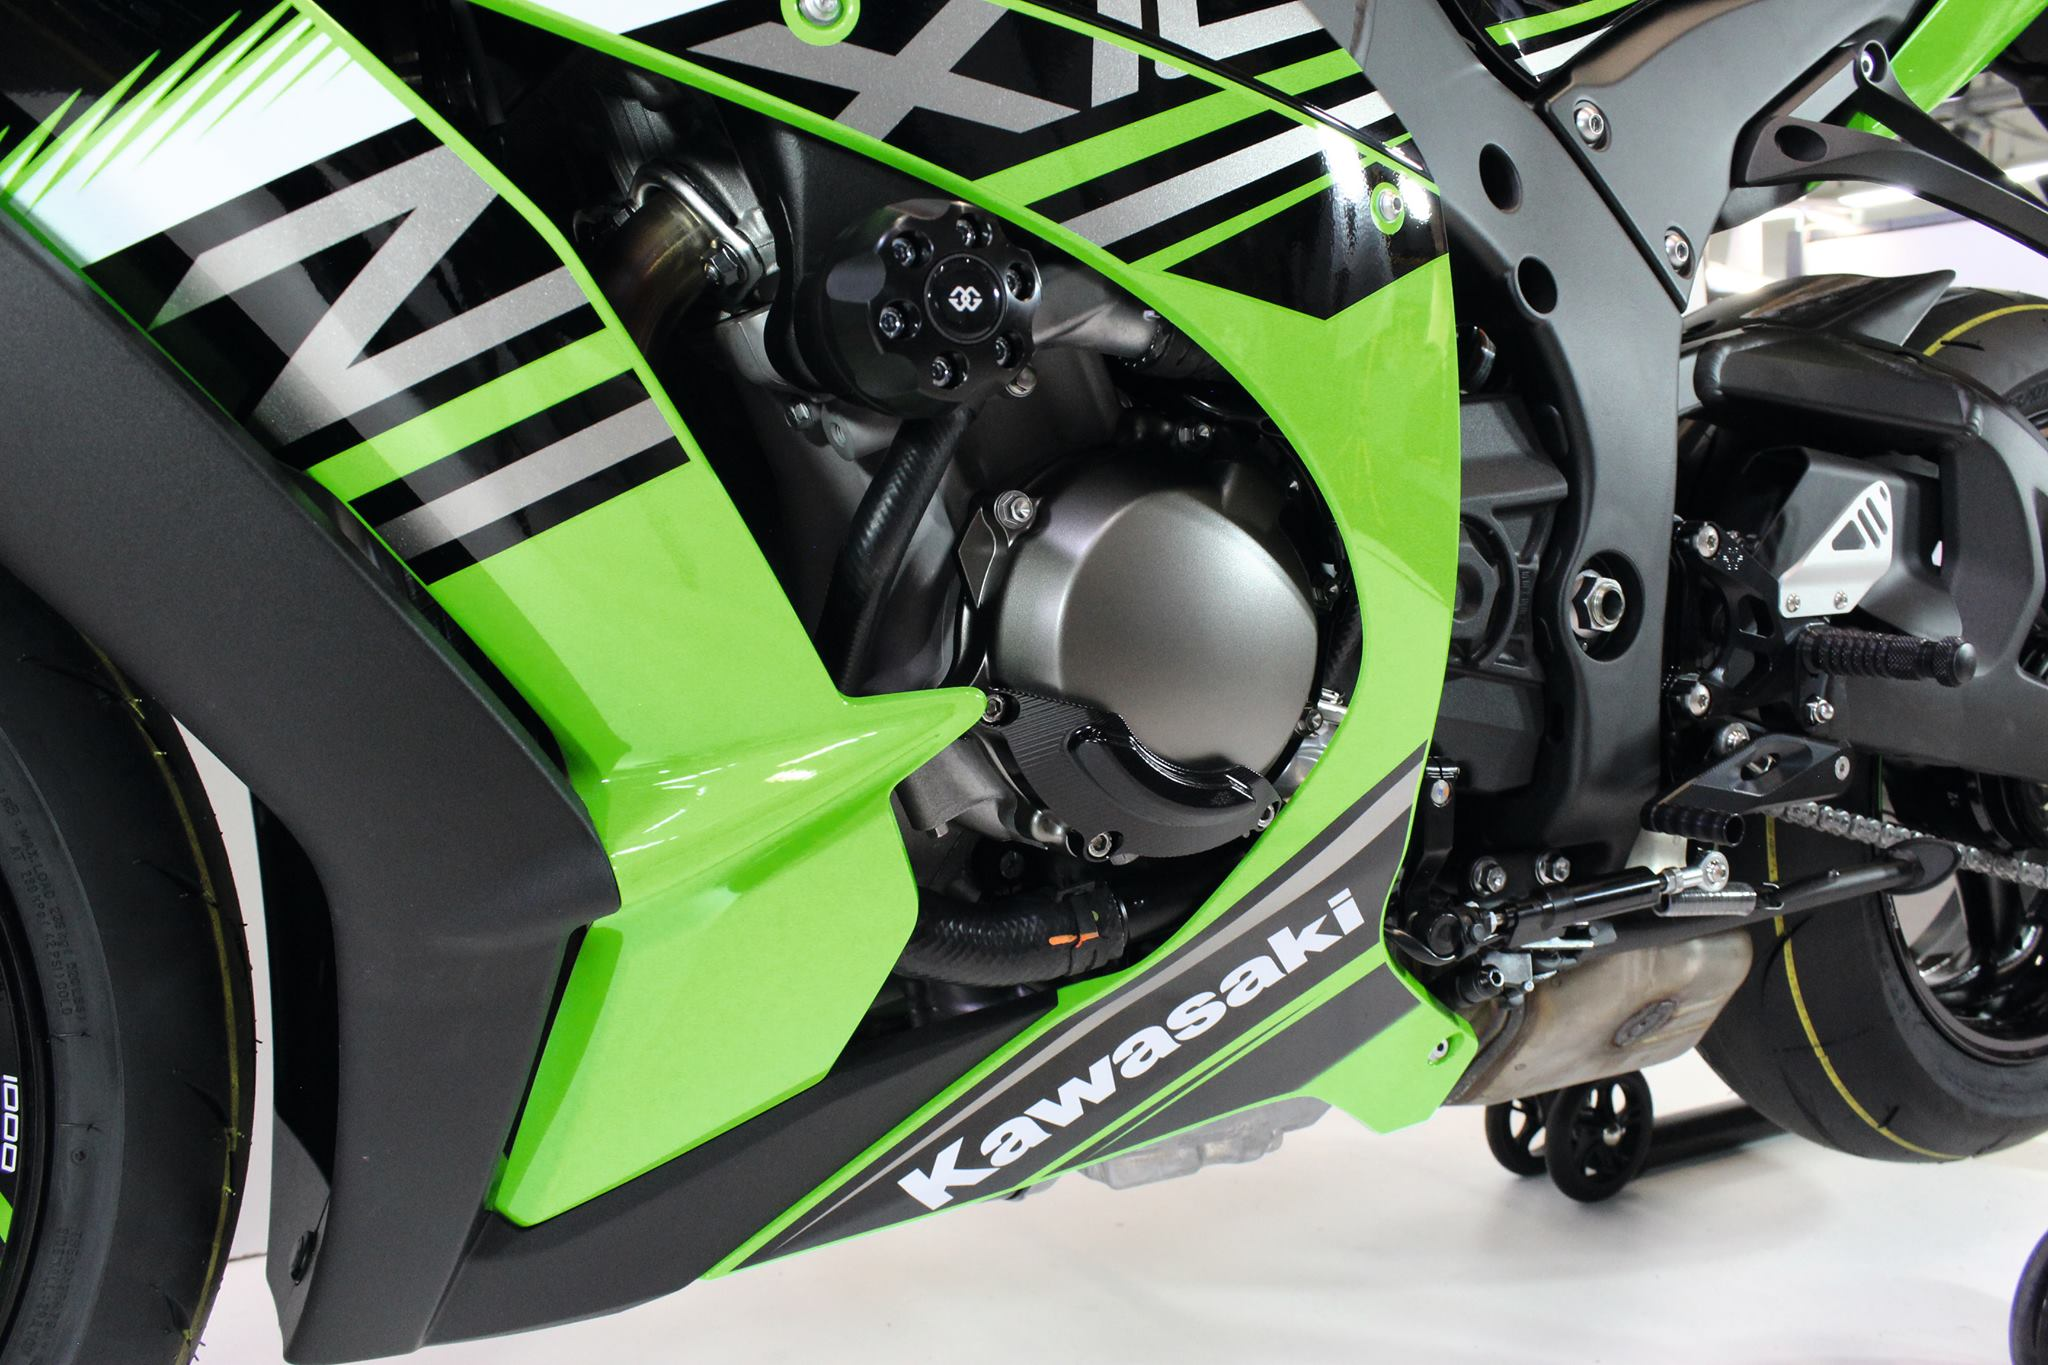 ZX-10R Gilles Tooling - Left Side View